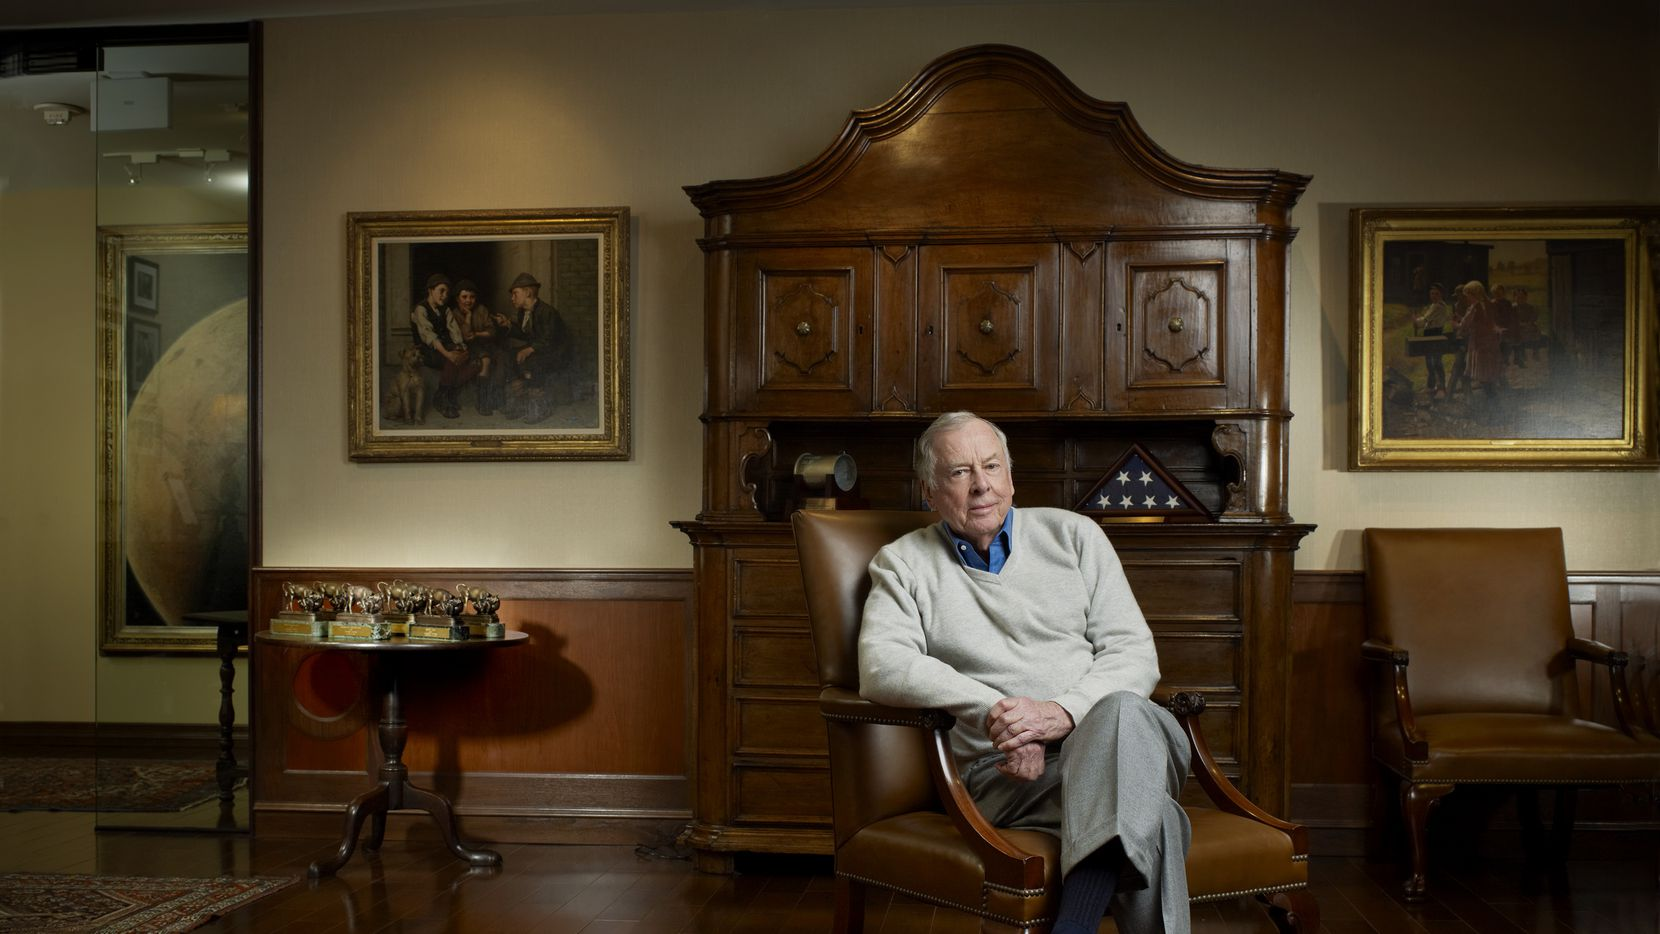 T. Boone Pickens was photographed in front of two paintings by John George Brown that will be auctioned by Christie's in New York on Oct. 28. Christie's expects Plotting Mischief, left, and Industrious Family, right, to fetch between $120,000 to $160,000 each.